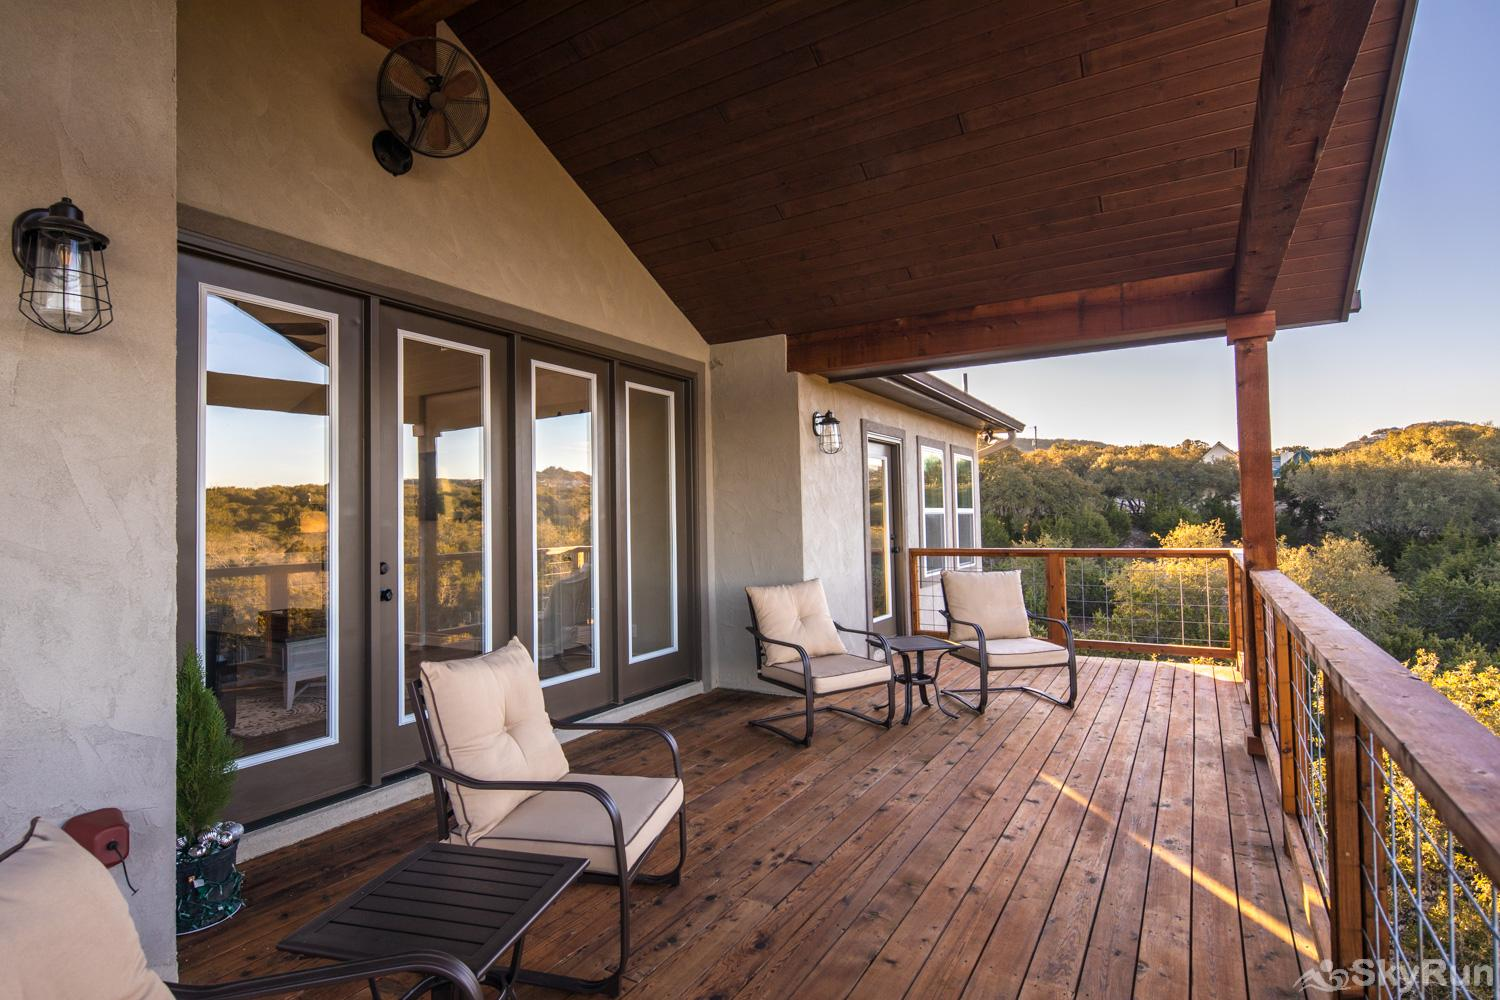 LAKESIDE LEDGE Covered Deck off Main Living Areas